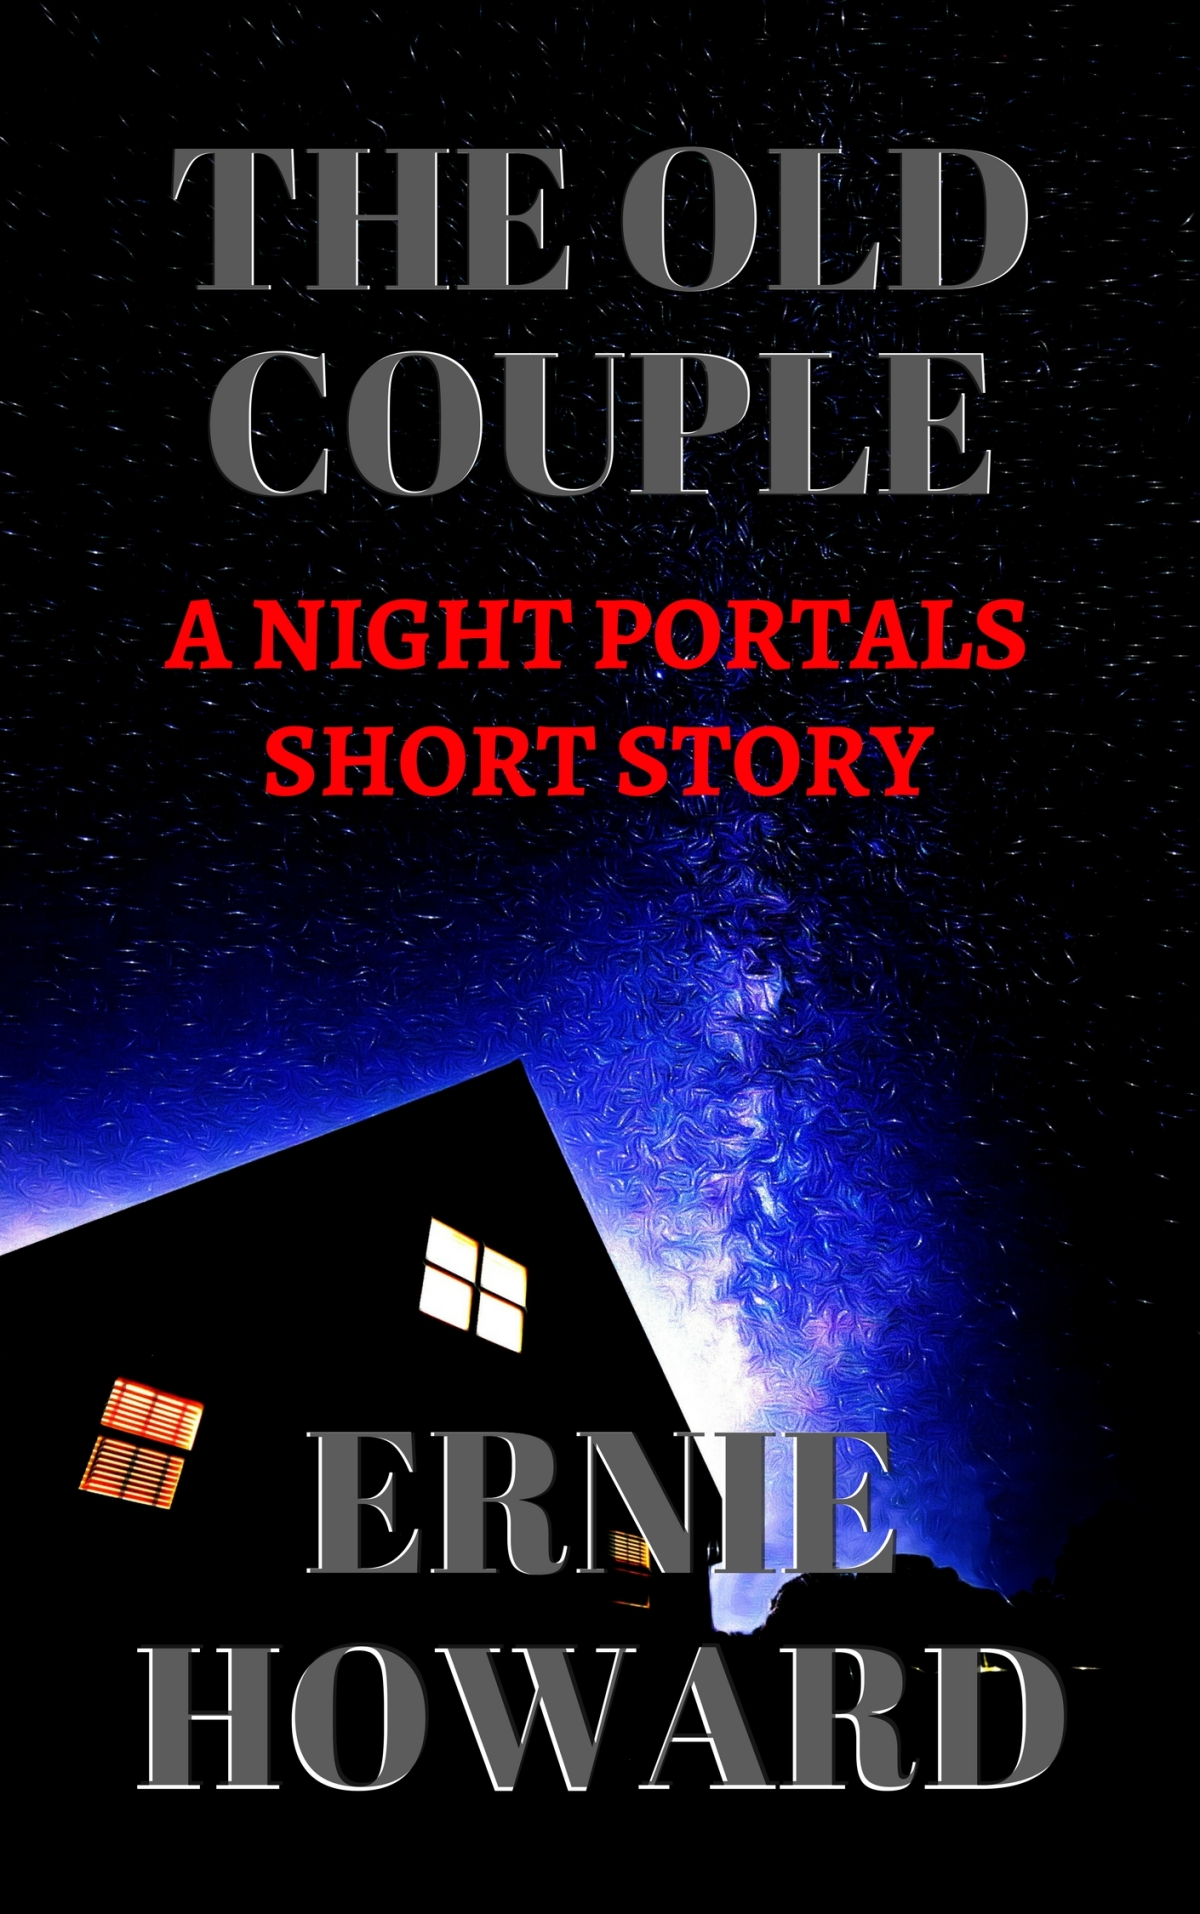 Sample of, The Old couple, A Night Portals Short Story